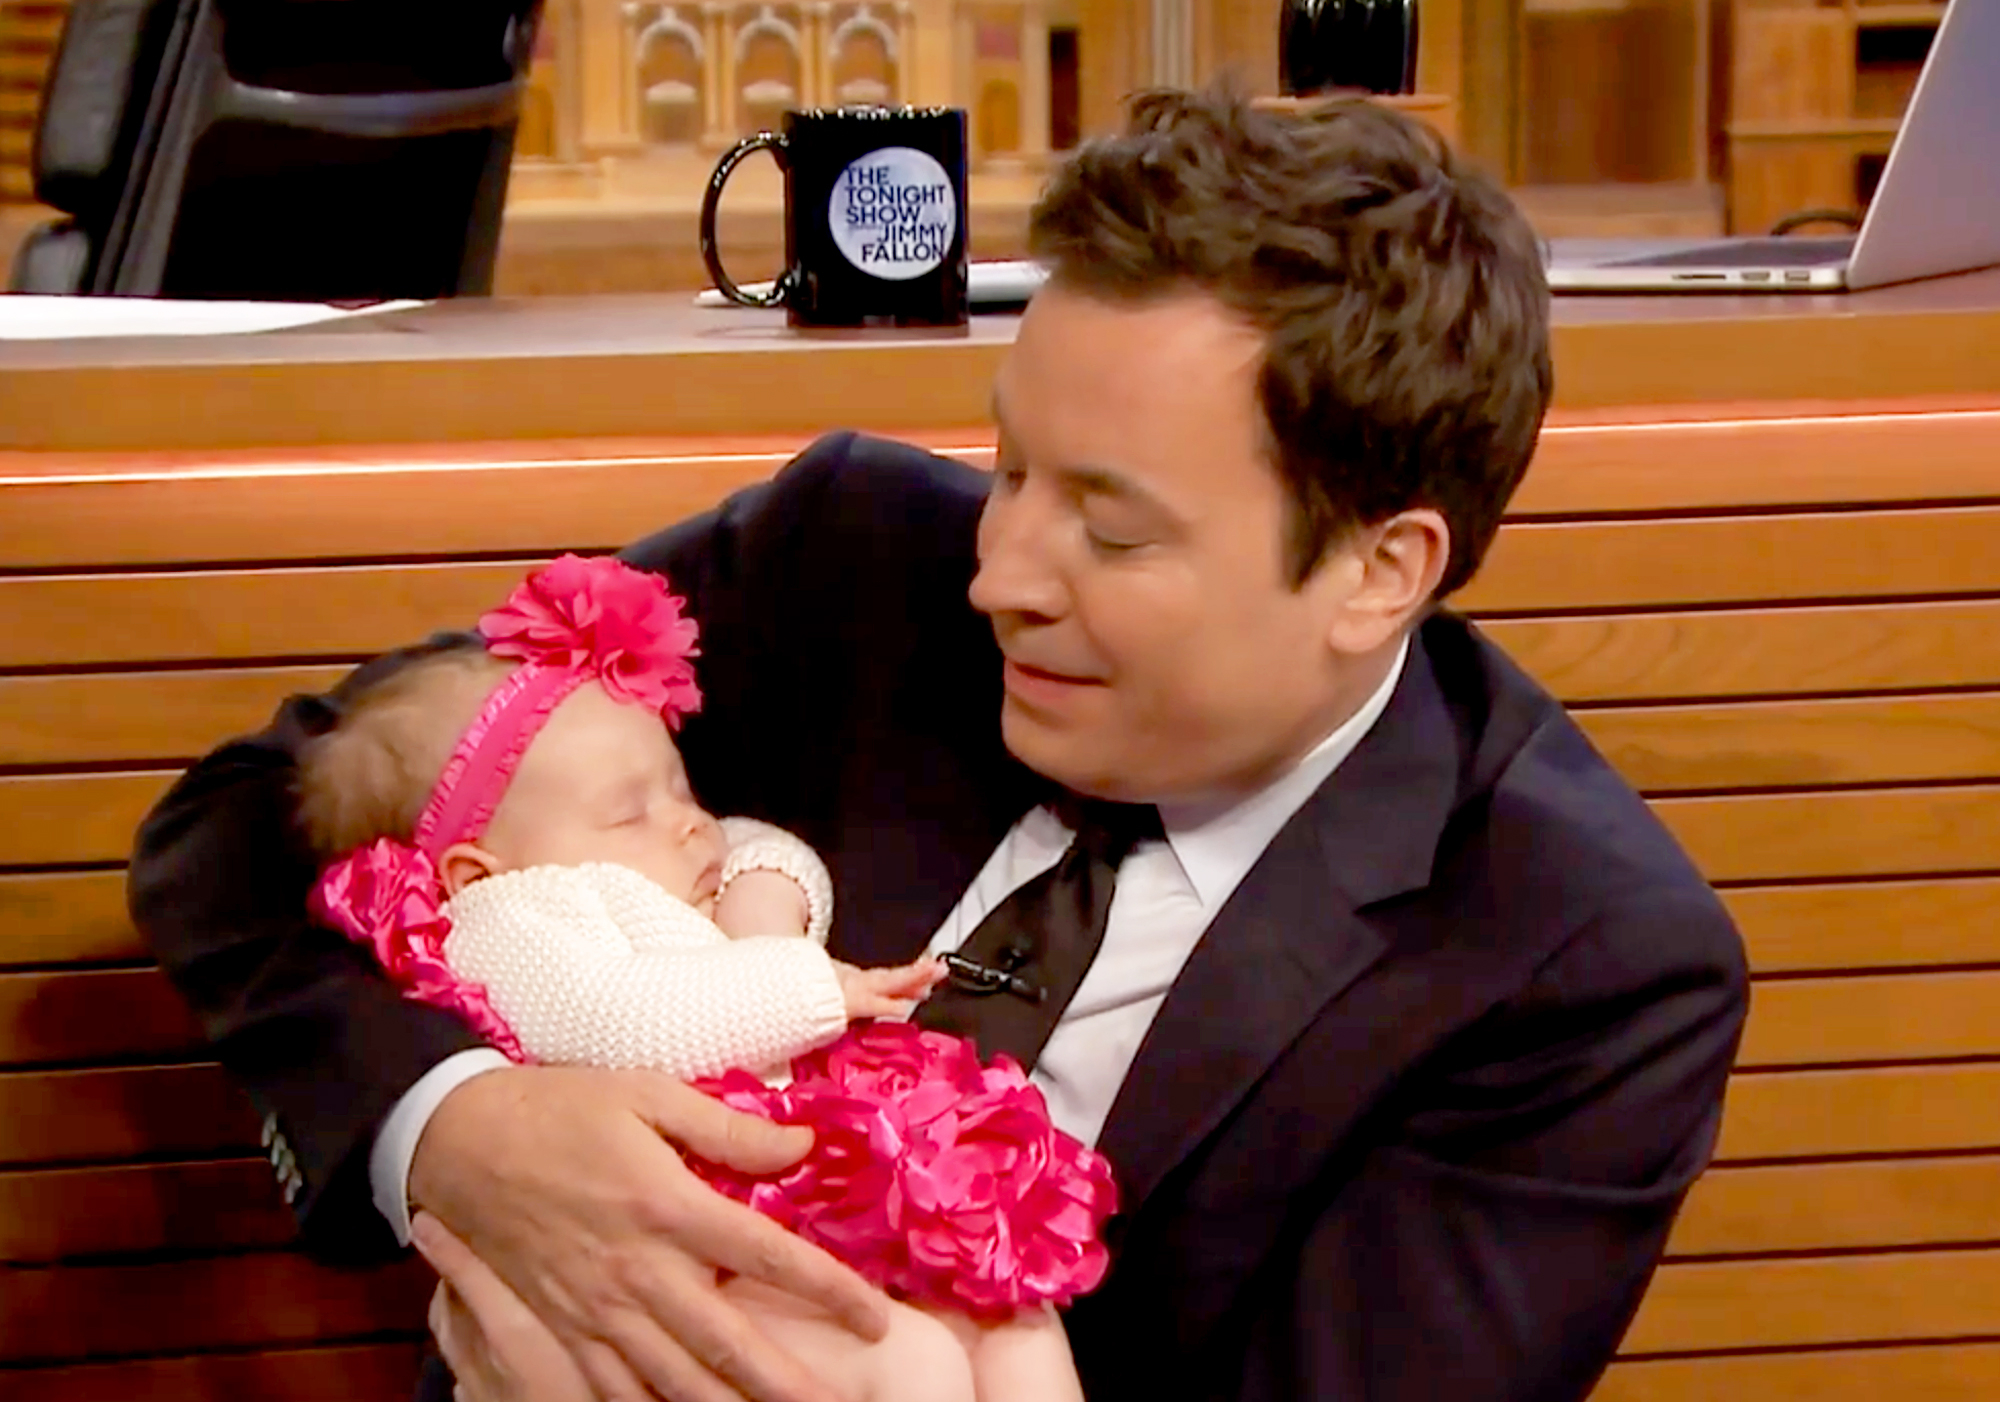 Jimmy Fallon and Chanel